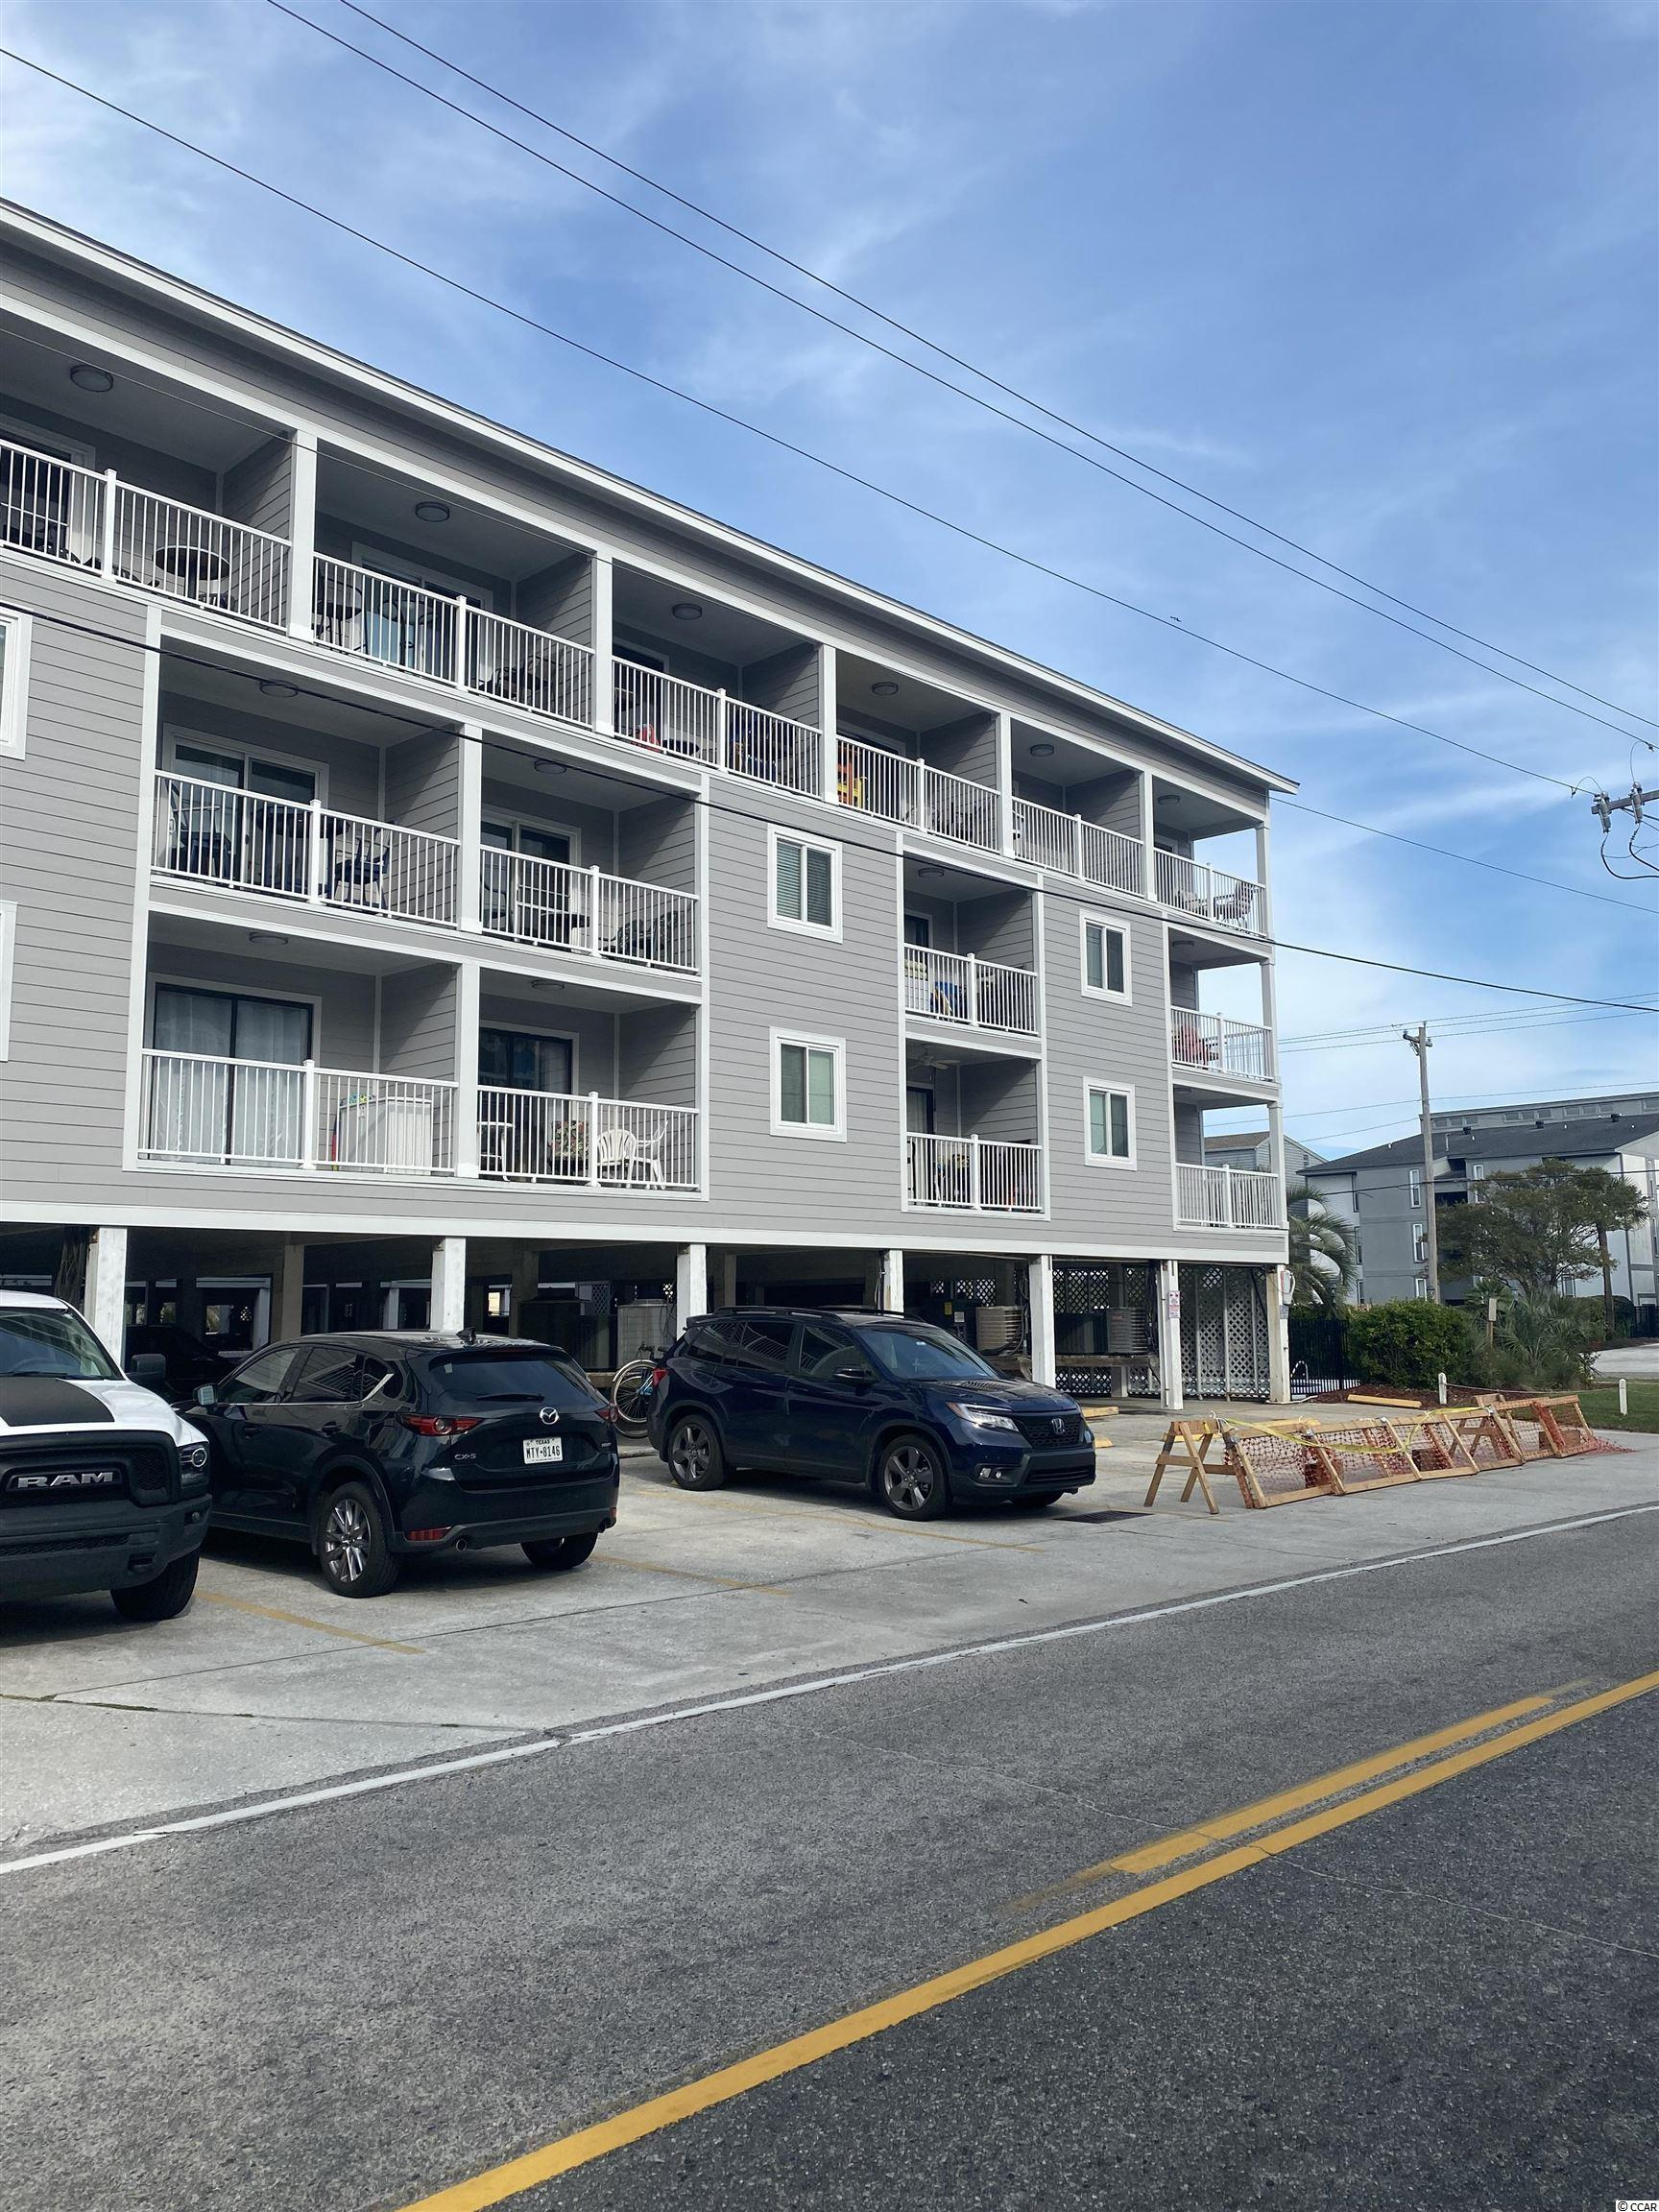 Looking for a great condo in Garden city ..... here it is. Nice 2 br 1 bath unit on the third floor with great views of the Atlantic Ocean. Fully furnished and mainly used as a second home . This unit is in a great location for walking, activities and of course the beach. There is a pool on property and an elevator.  Book your showing today!